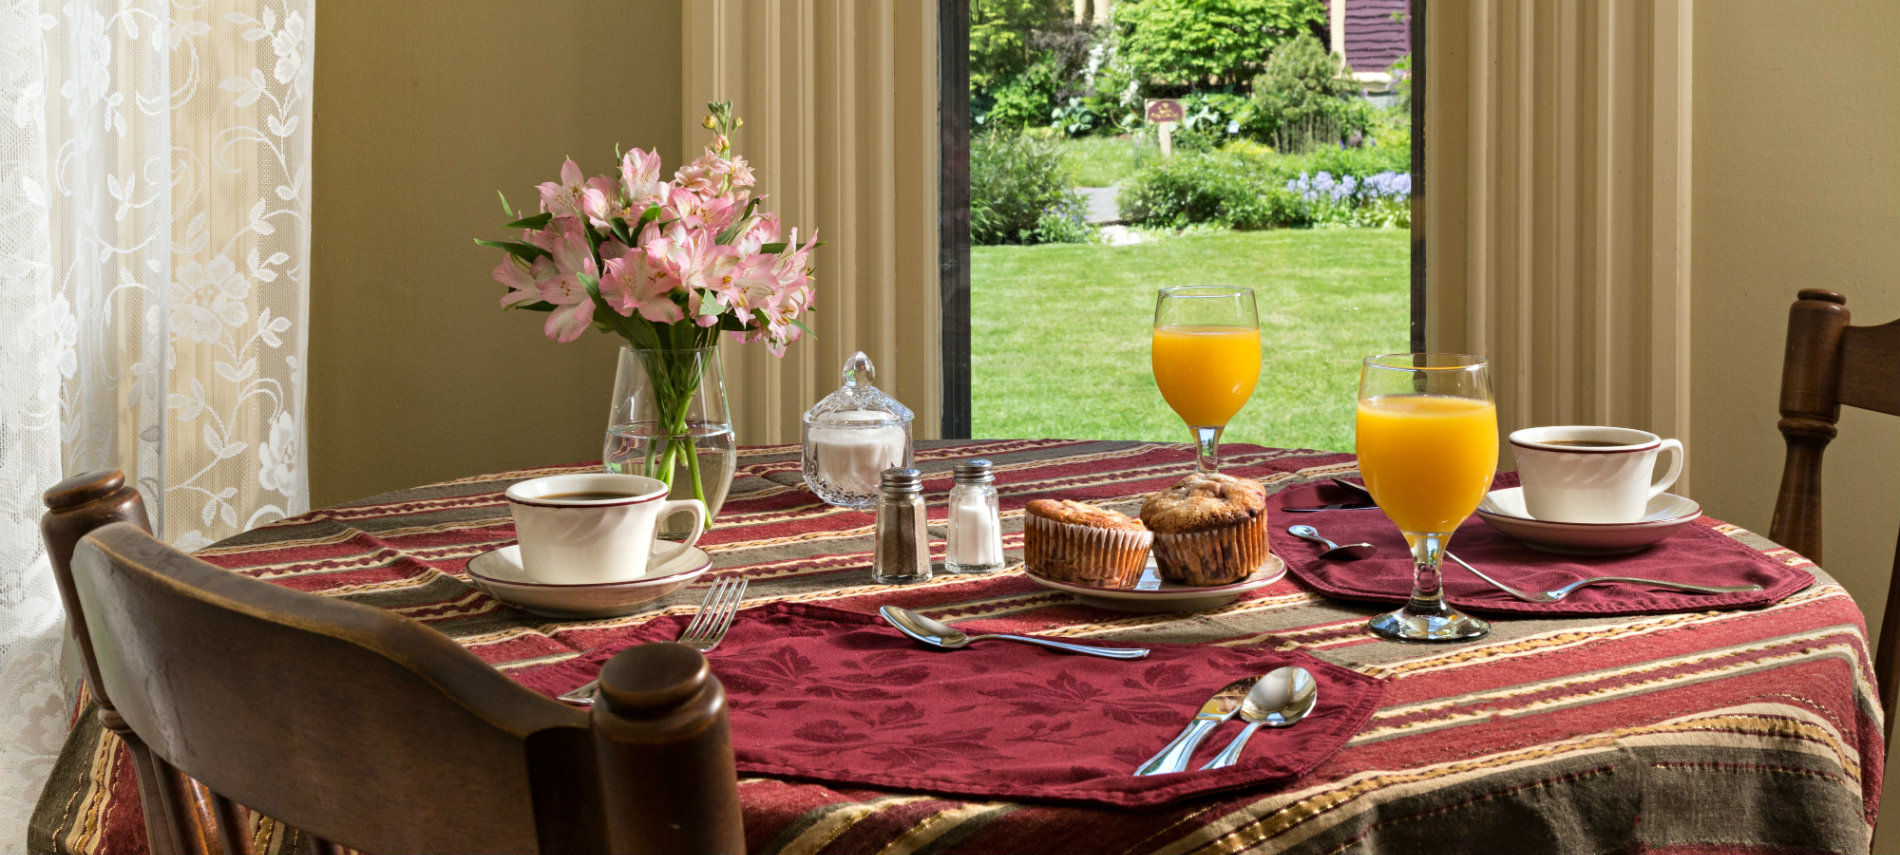 A table with a striped cloth set for breakfast with muffins, coffee and juice.